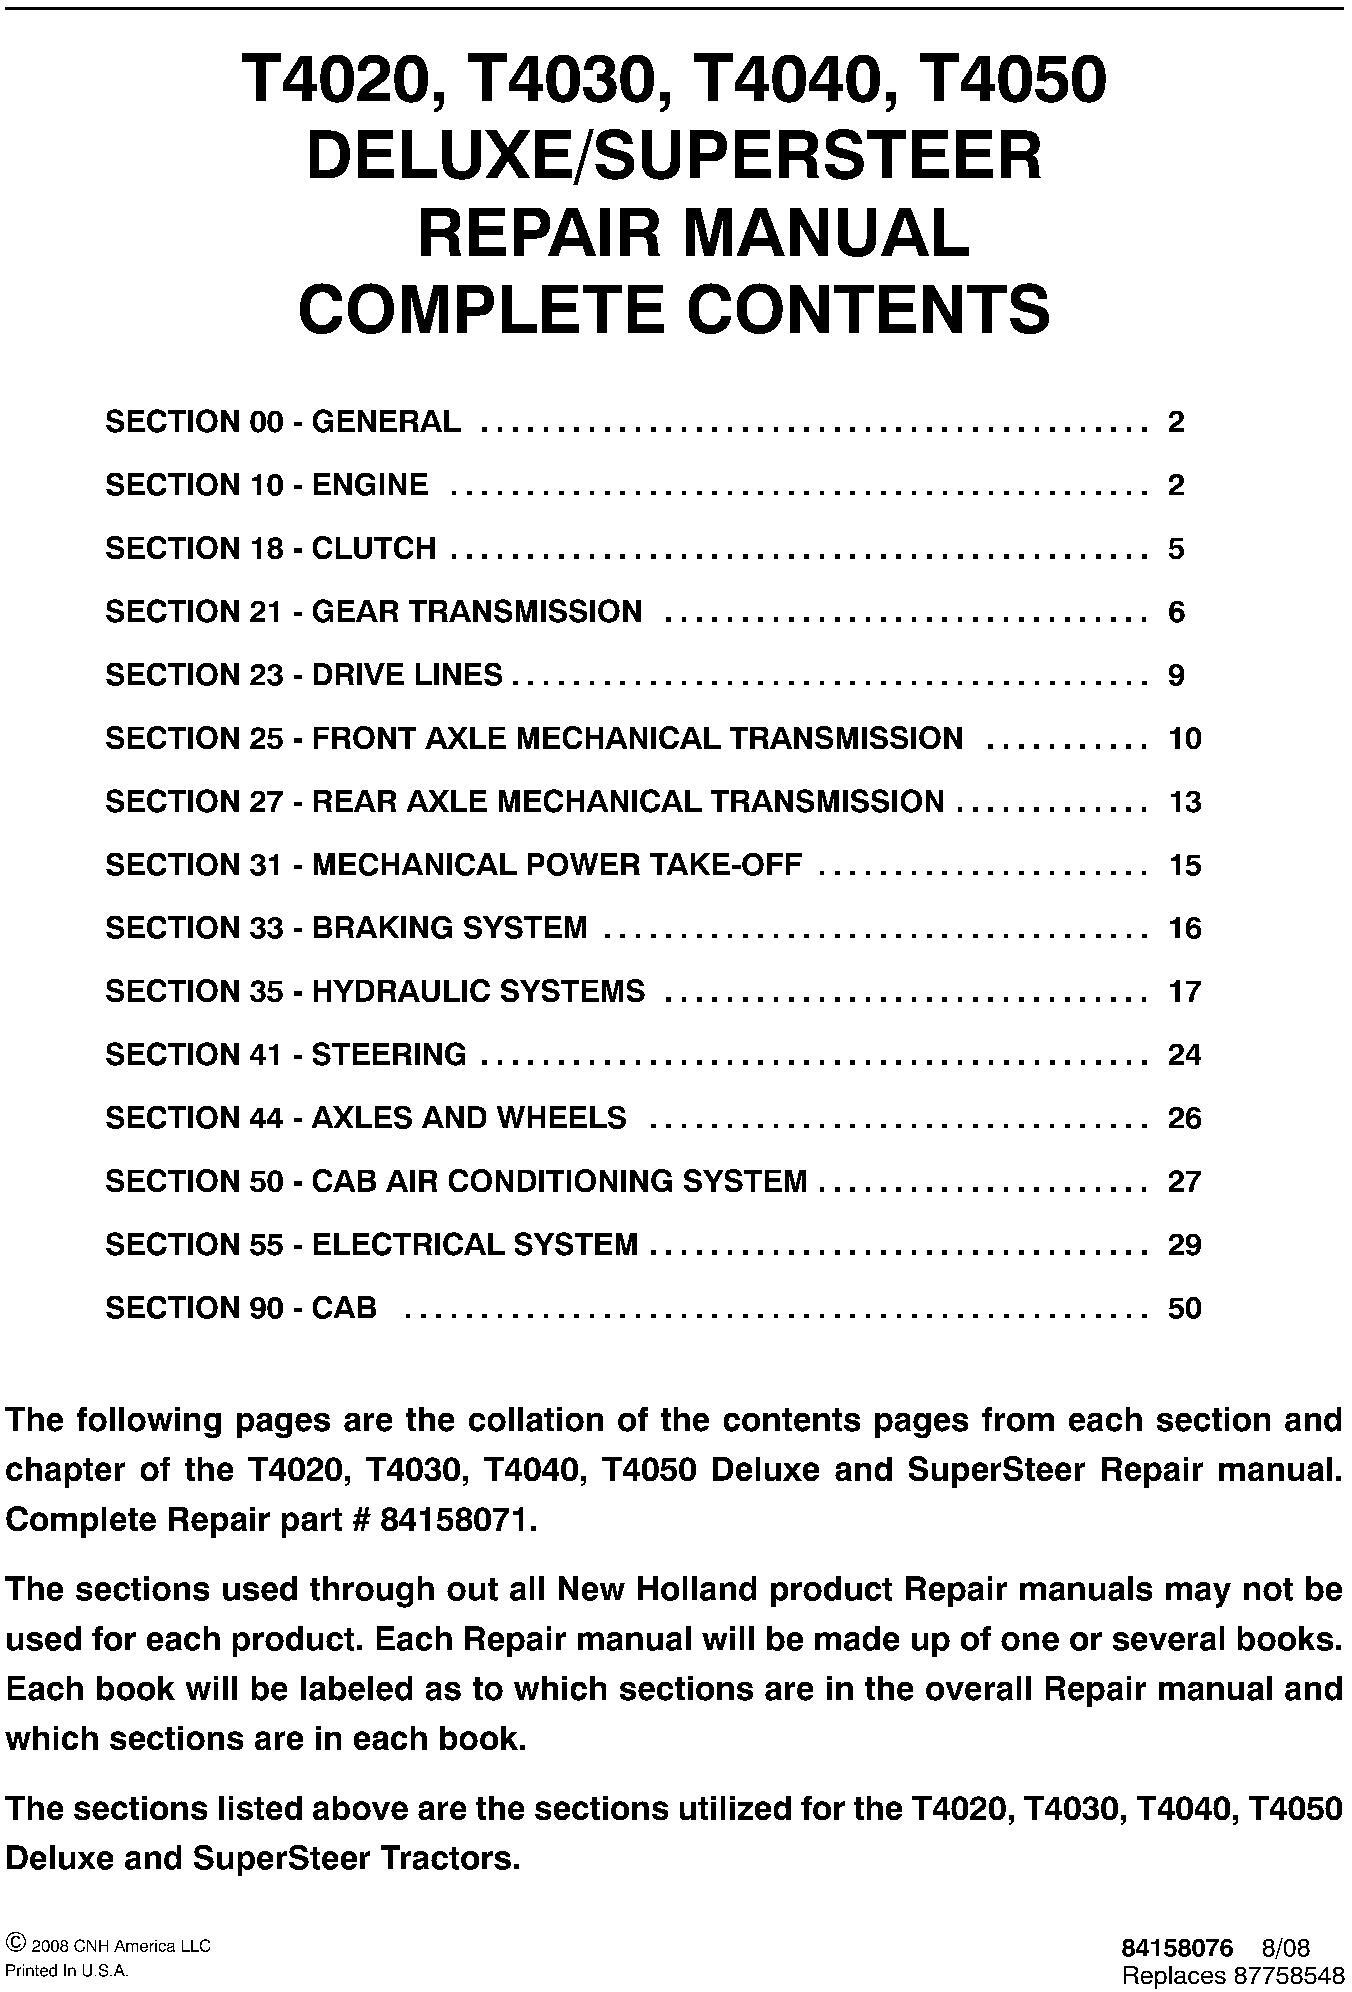 New Holland T4020, T4030, T4040, T4050 Deluxe/SuperSteer Service Manual - 19551